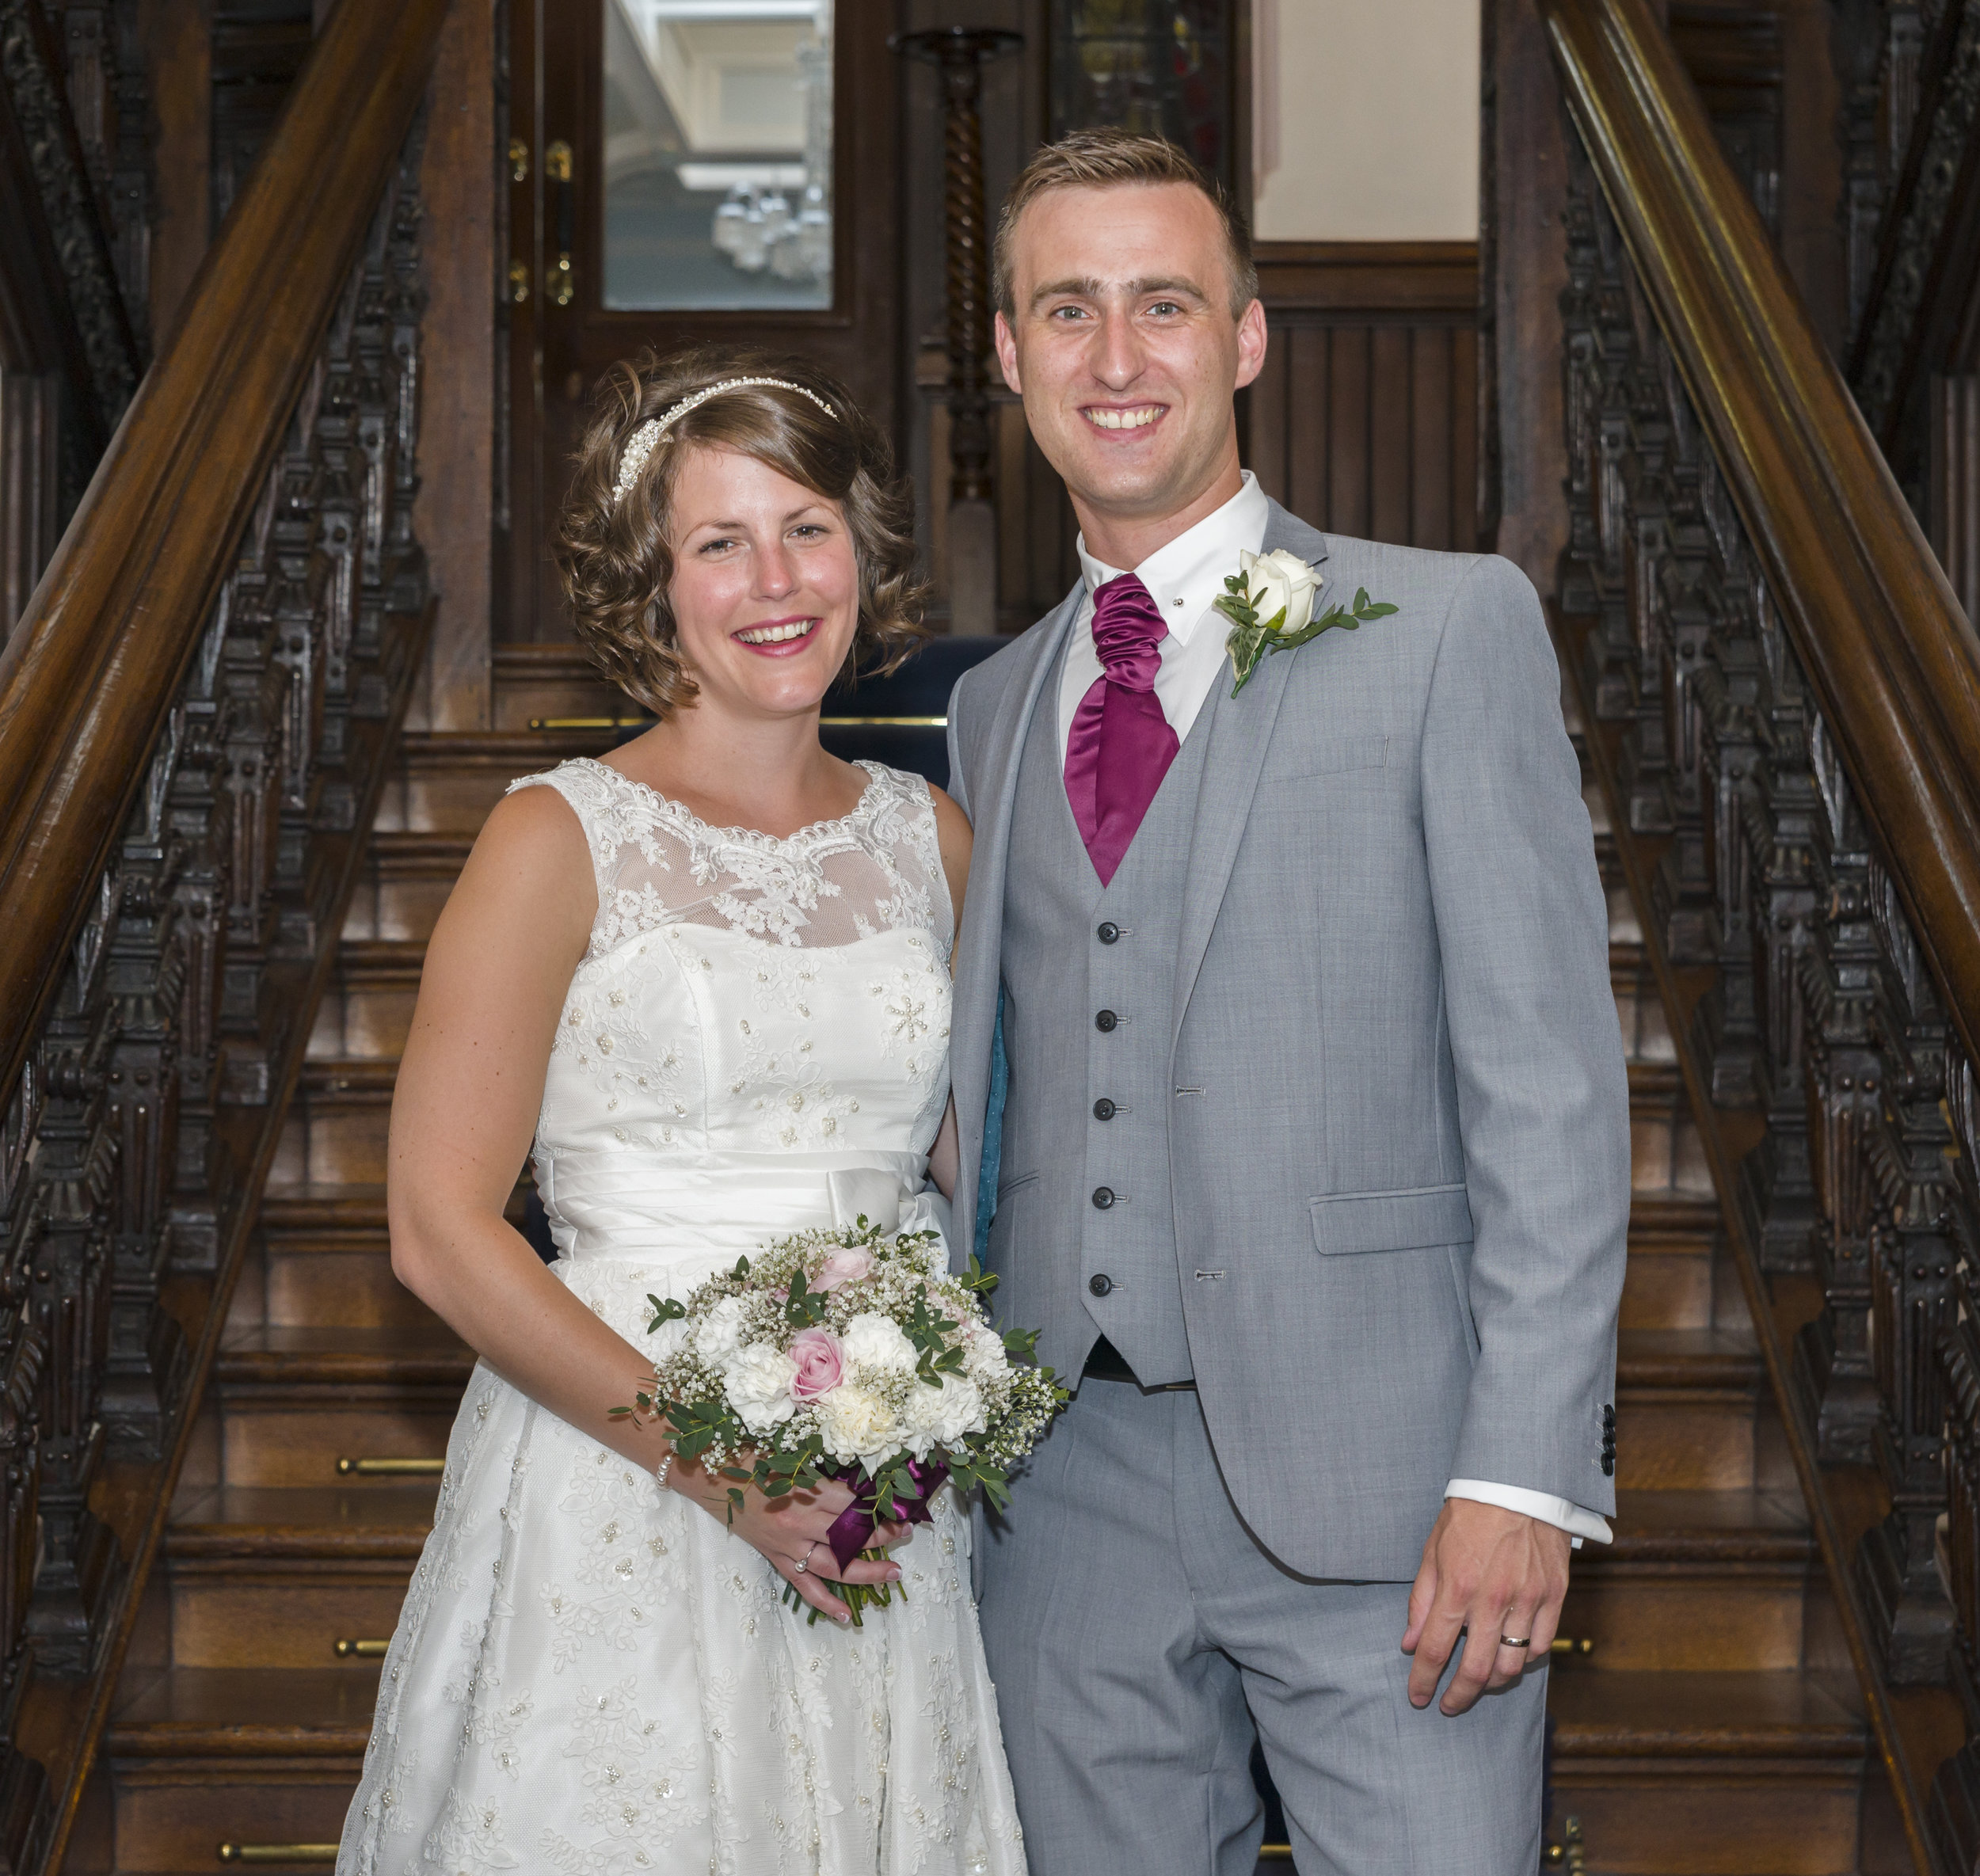 Wedding Photography - Lewes, Town Hall 1